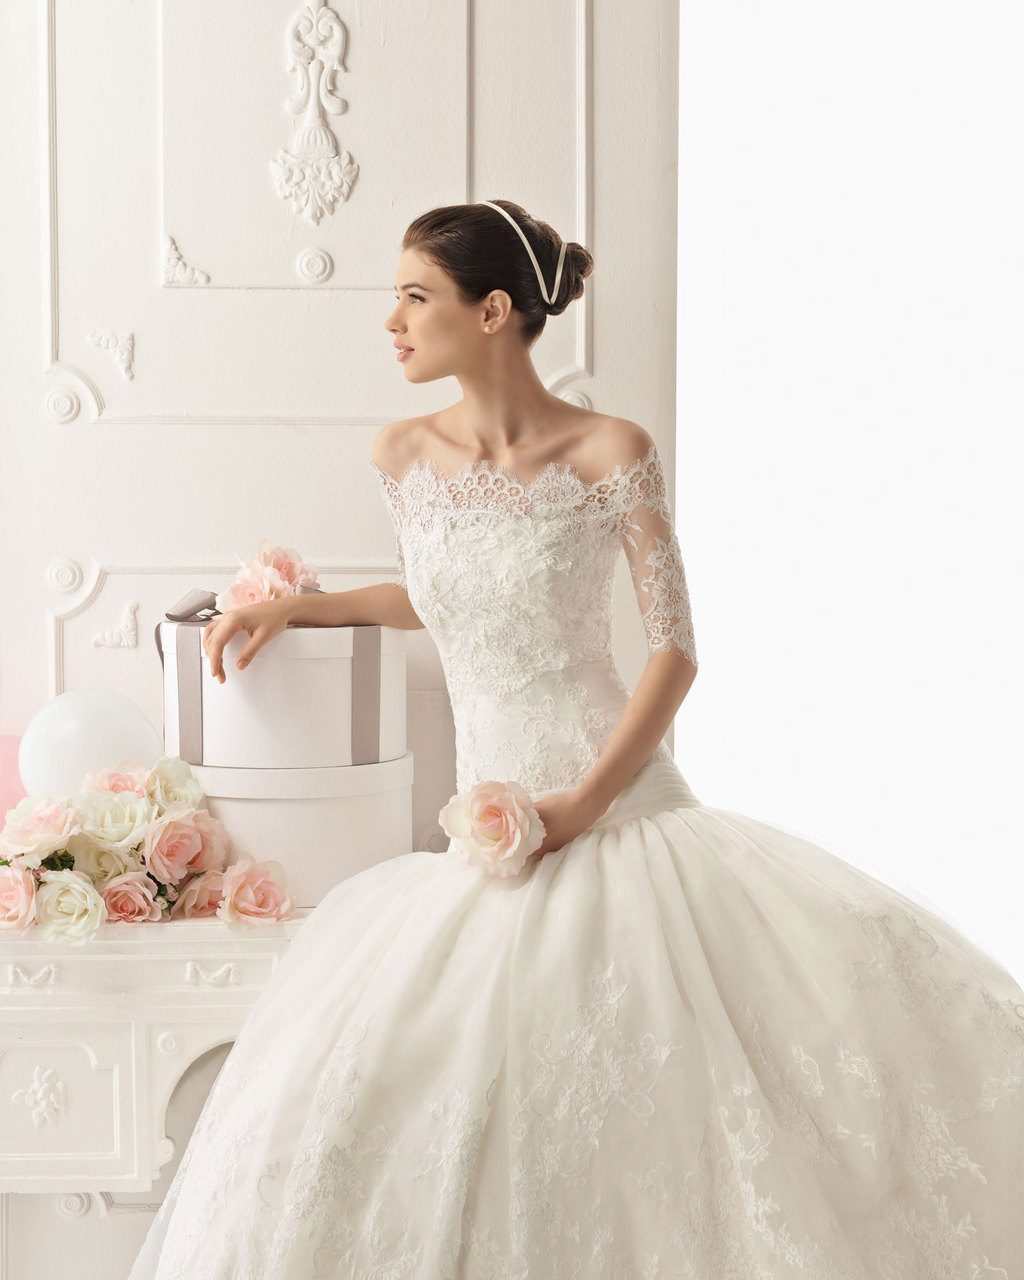 Lace wedding dress from rosa clara bridal with off the